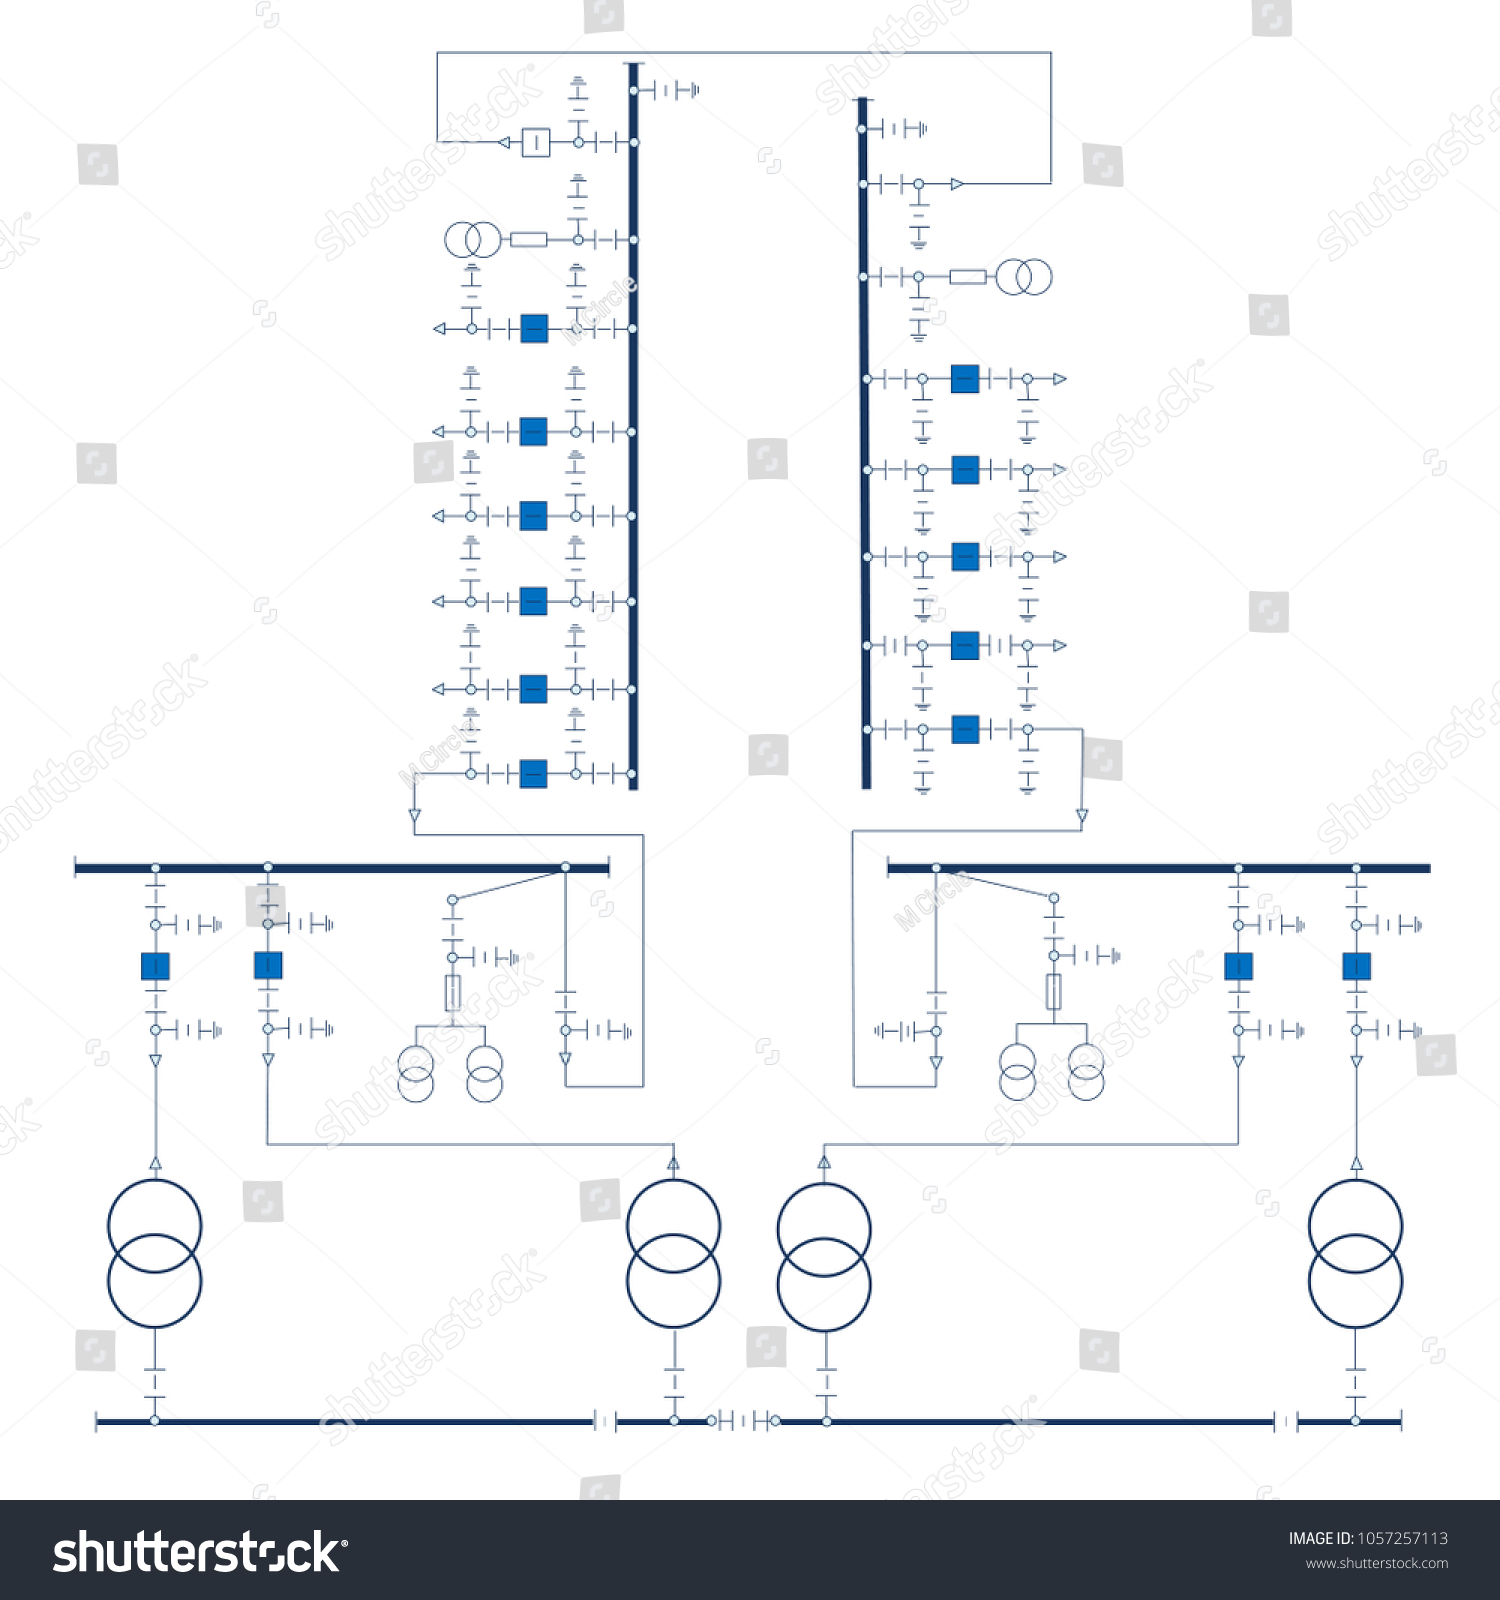 Vector Wiring Diagram Library Osd Electric For Power Transformers